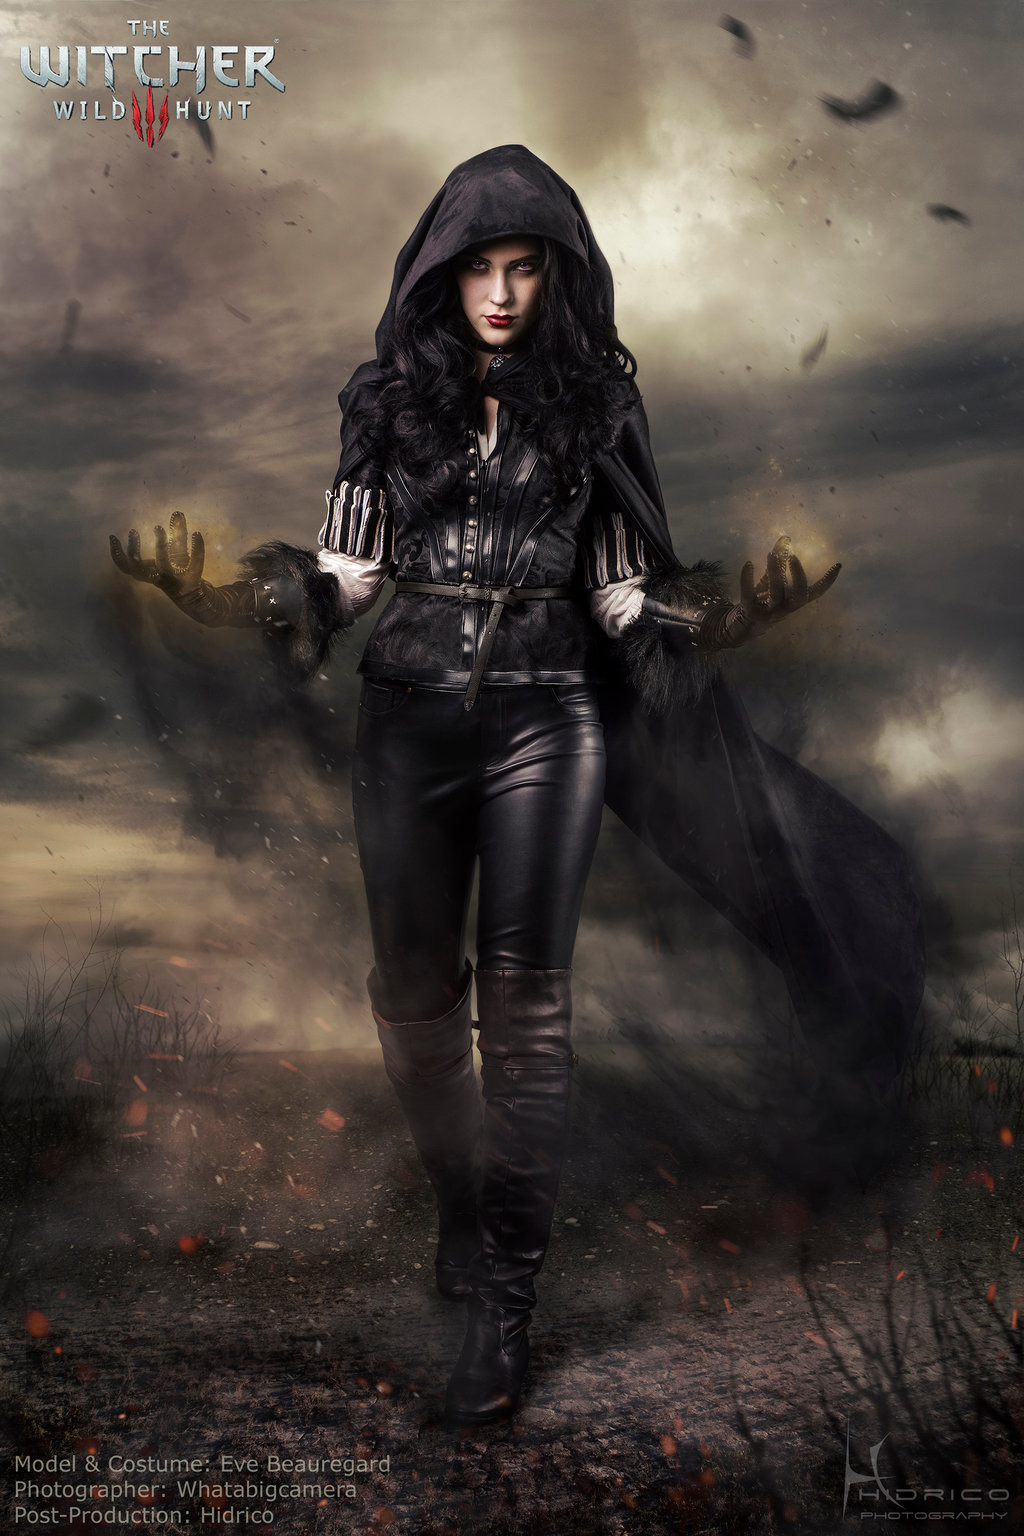 Hidrico rubens yennefer of vengerberg the witcher 3 by hidrico d7w2oue